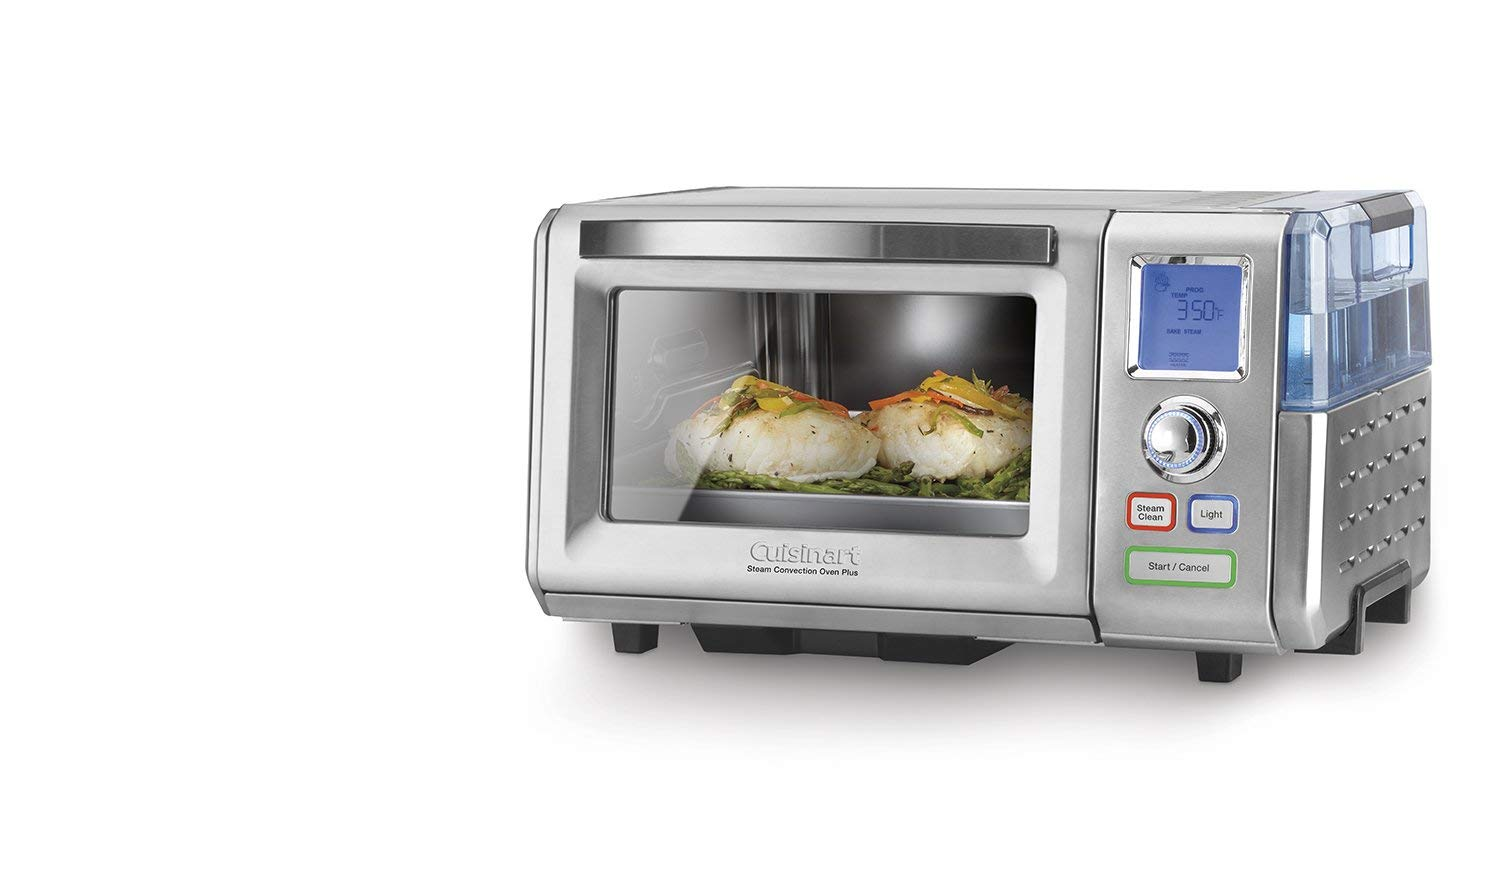 Review of - Cuisinart CSO-300N1 Steam & Convection Oven, Stainless Steel